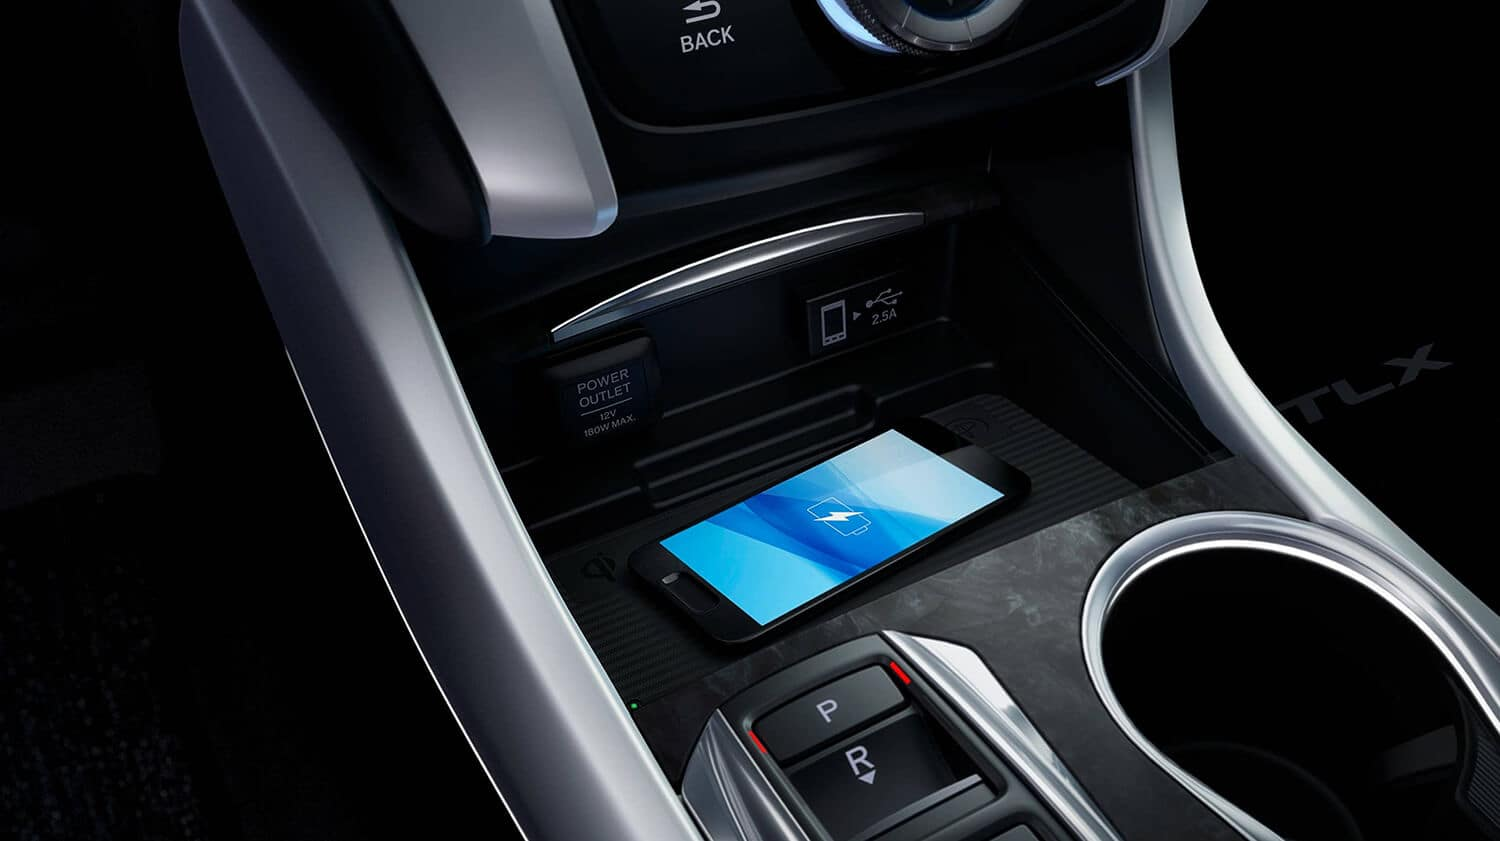 2020 Acura TLX Interior Wireless Charger